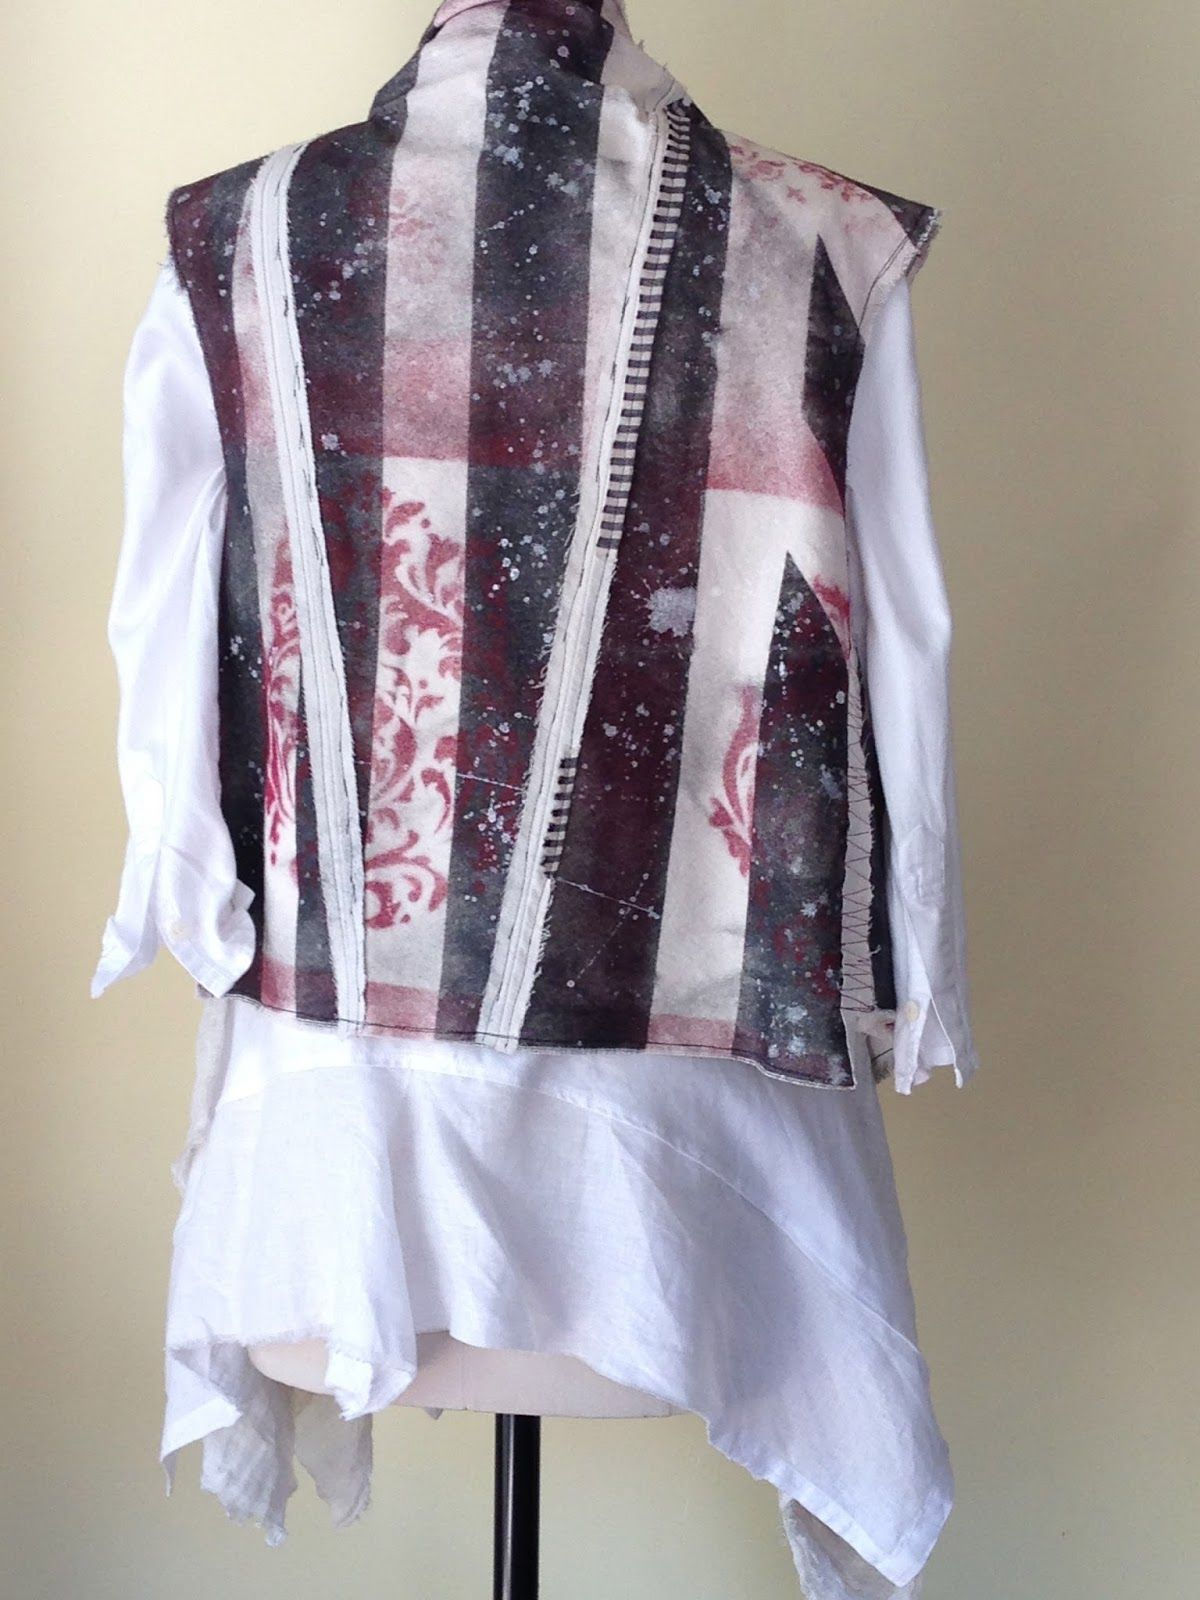 Gayle Ortiz: Stenciled canvas vest and remade men's shirt combo